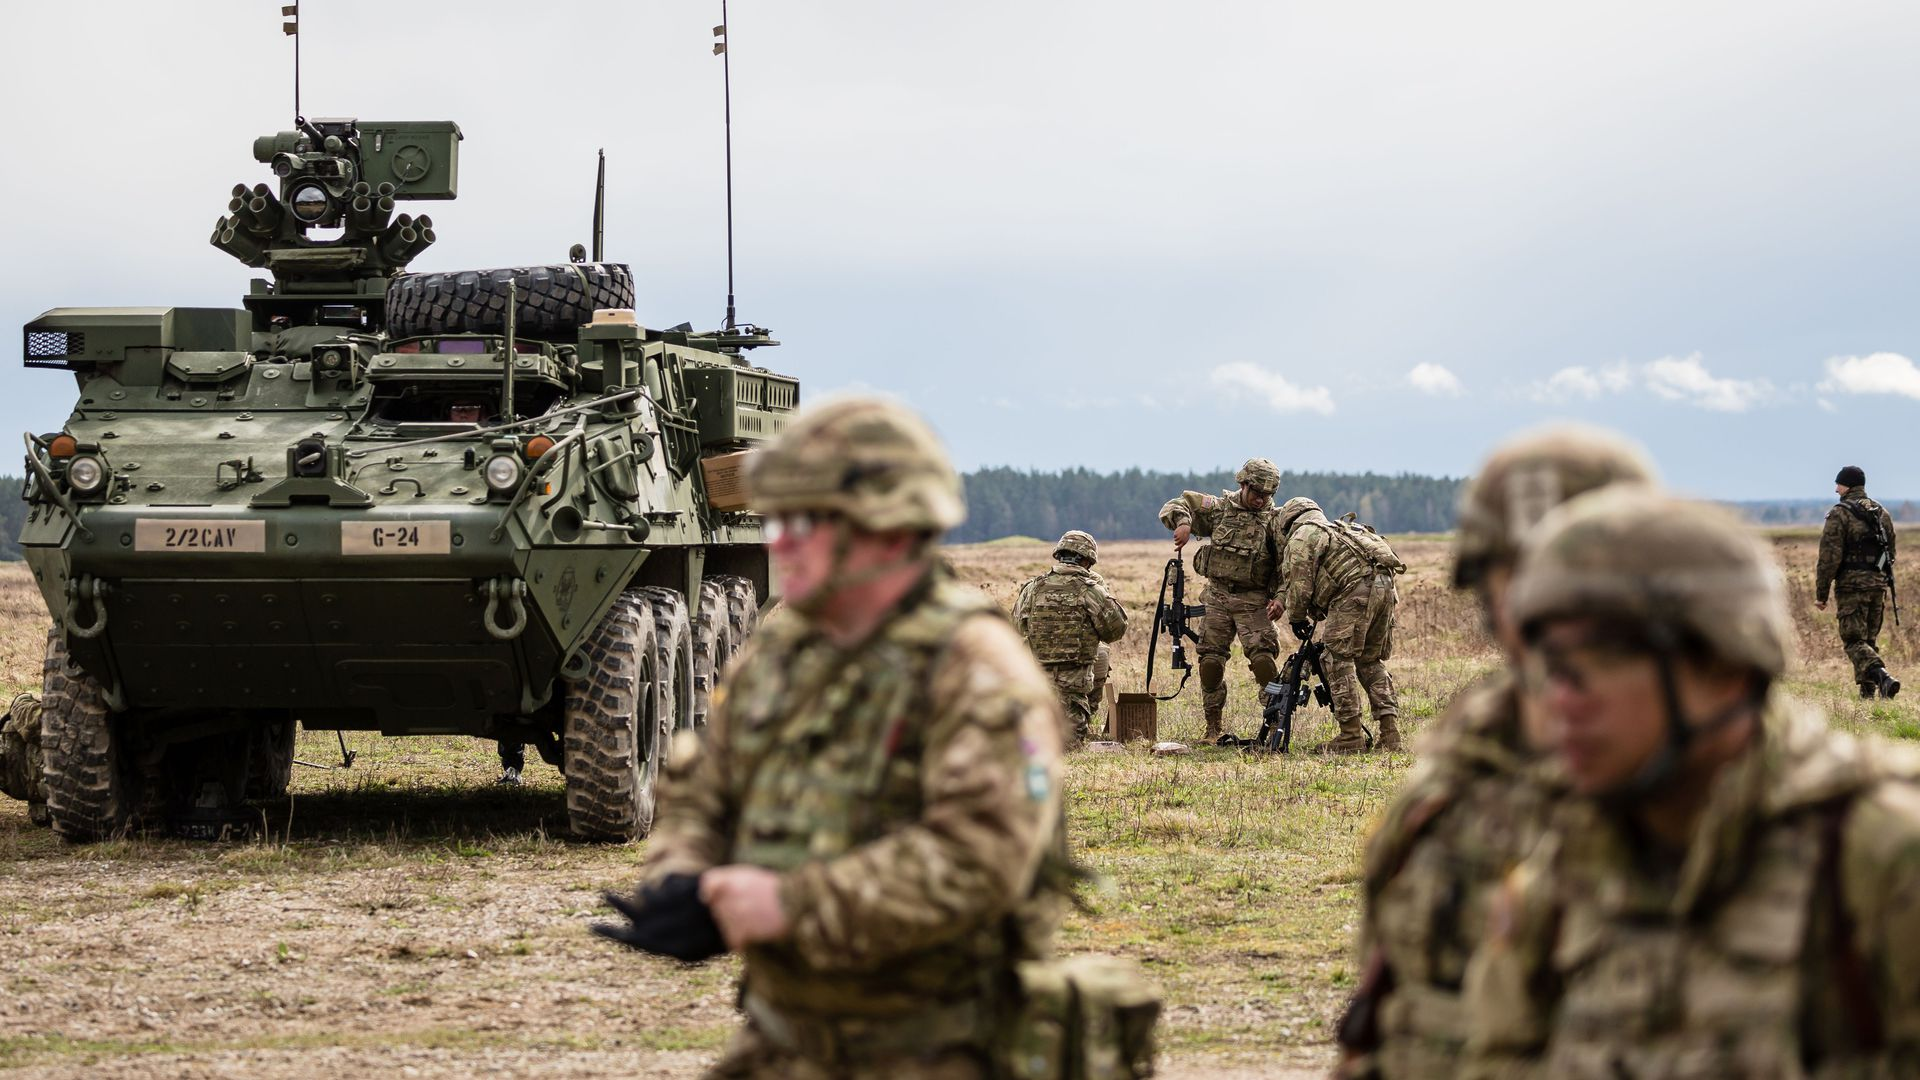 U.S. soldiers at a welcoming ceremony of NATO troops in Orzysz, Poland last year.